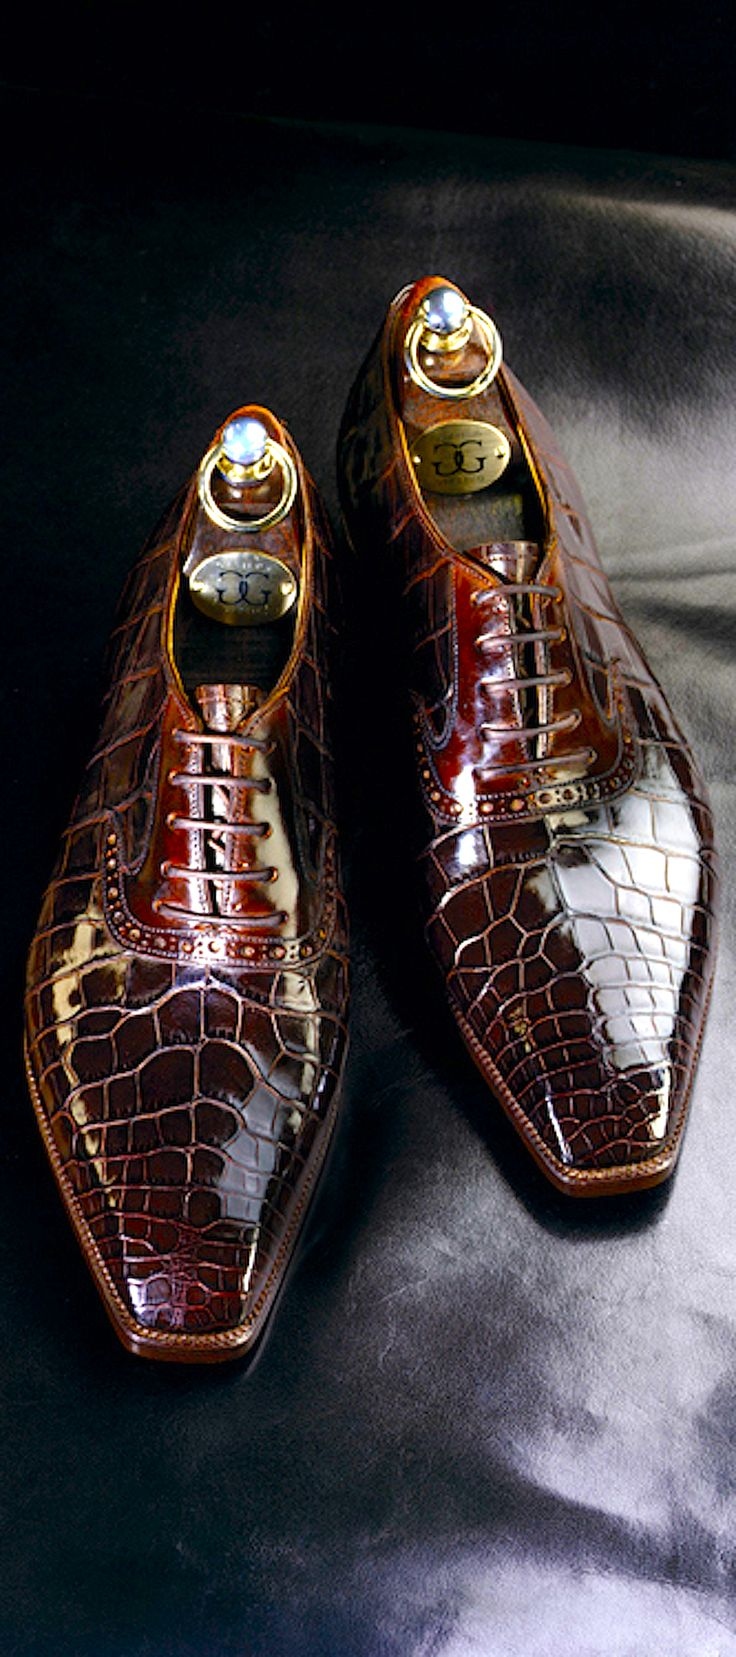 Here are a pair of bespoke Crocodile lace-up shoes by Gaziano Girling. The…